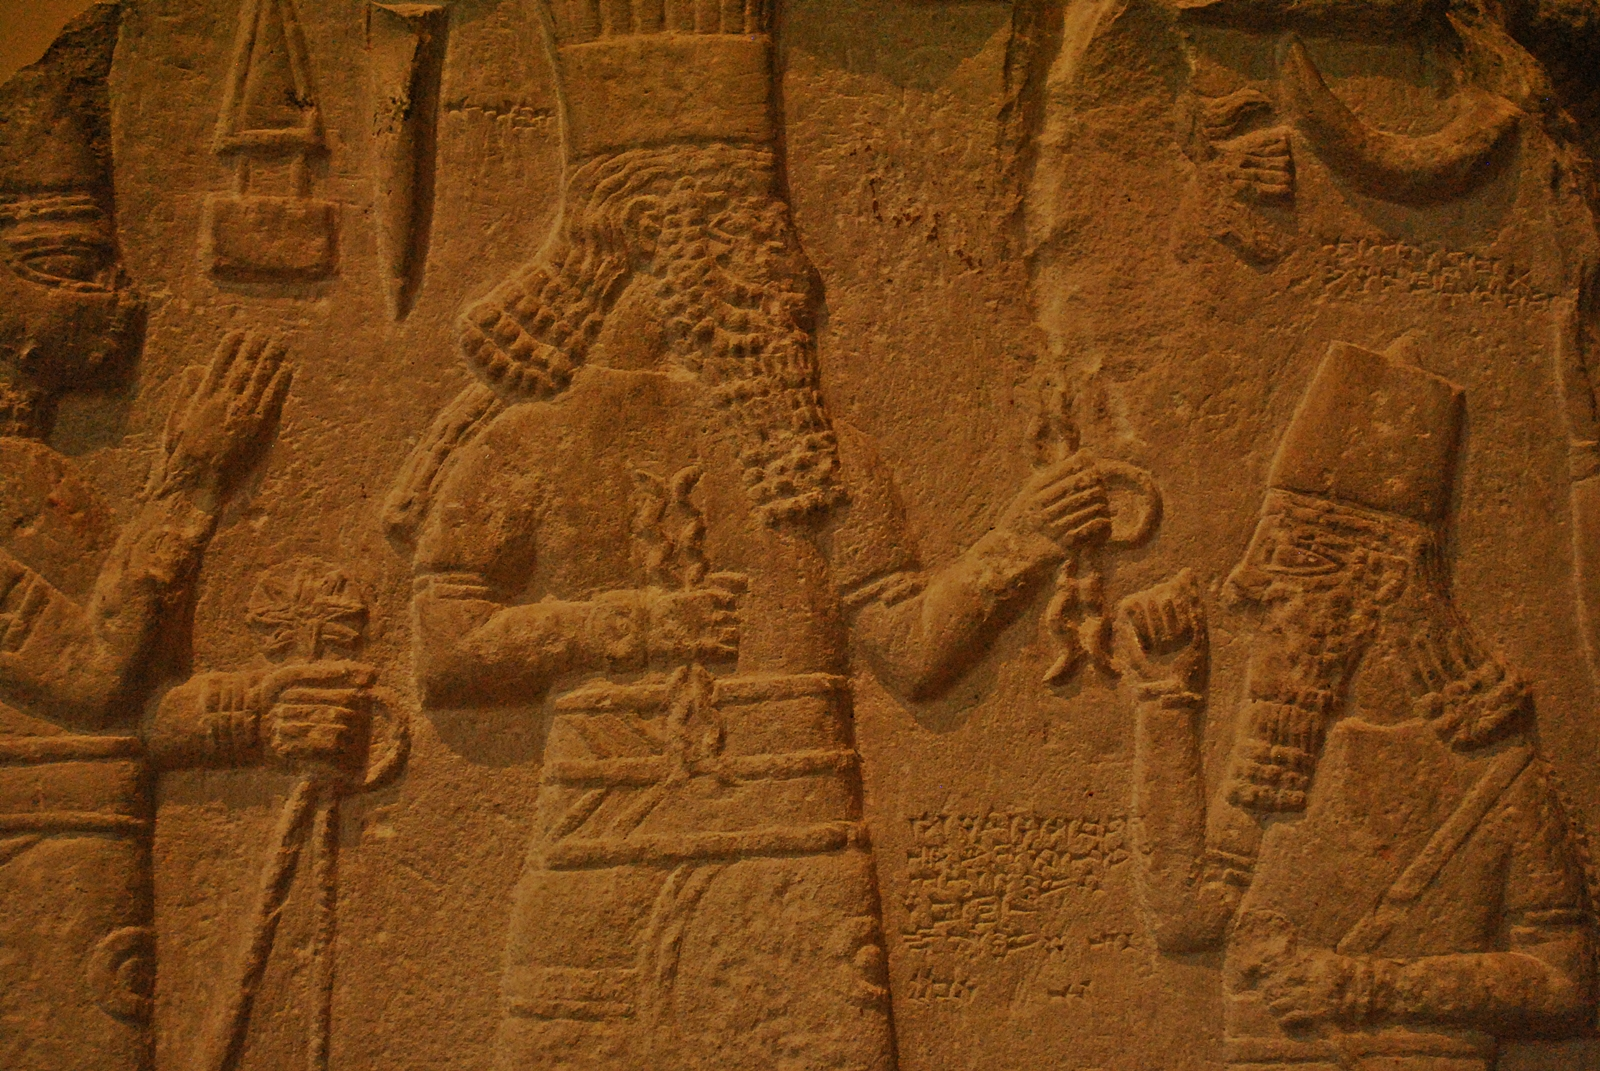 gods Shala & Adad in the Assyrian Empire